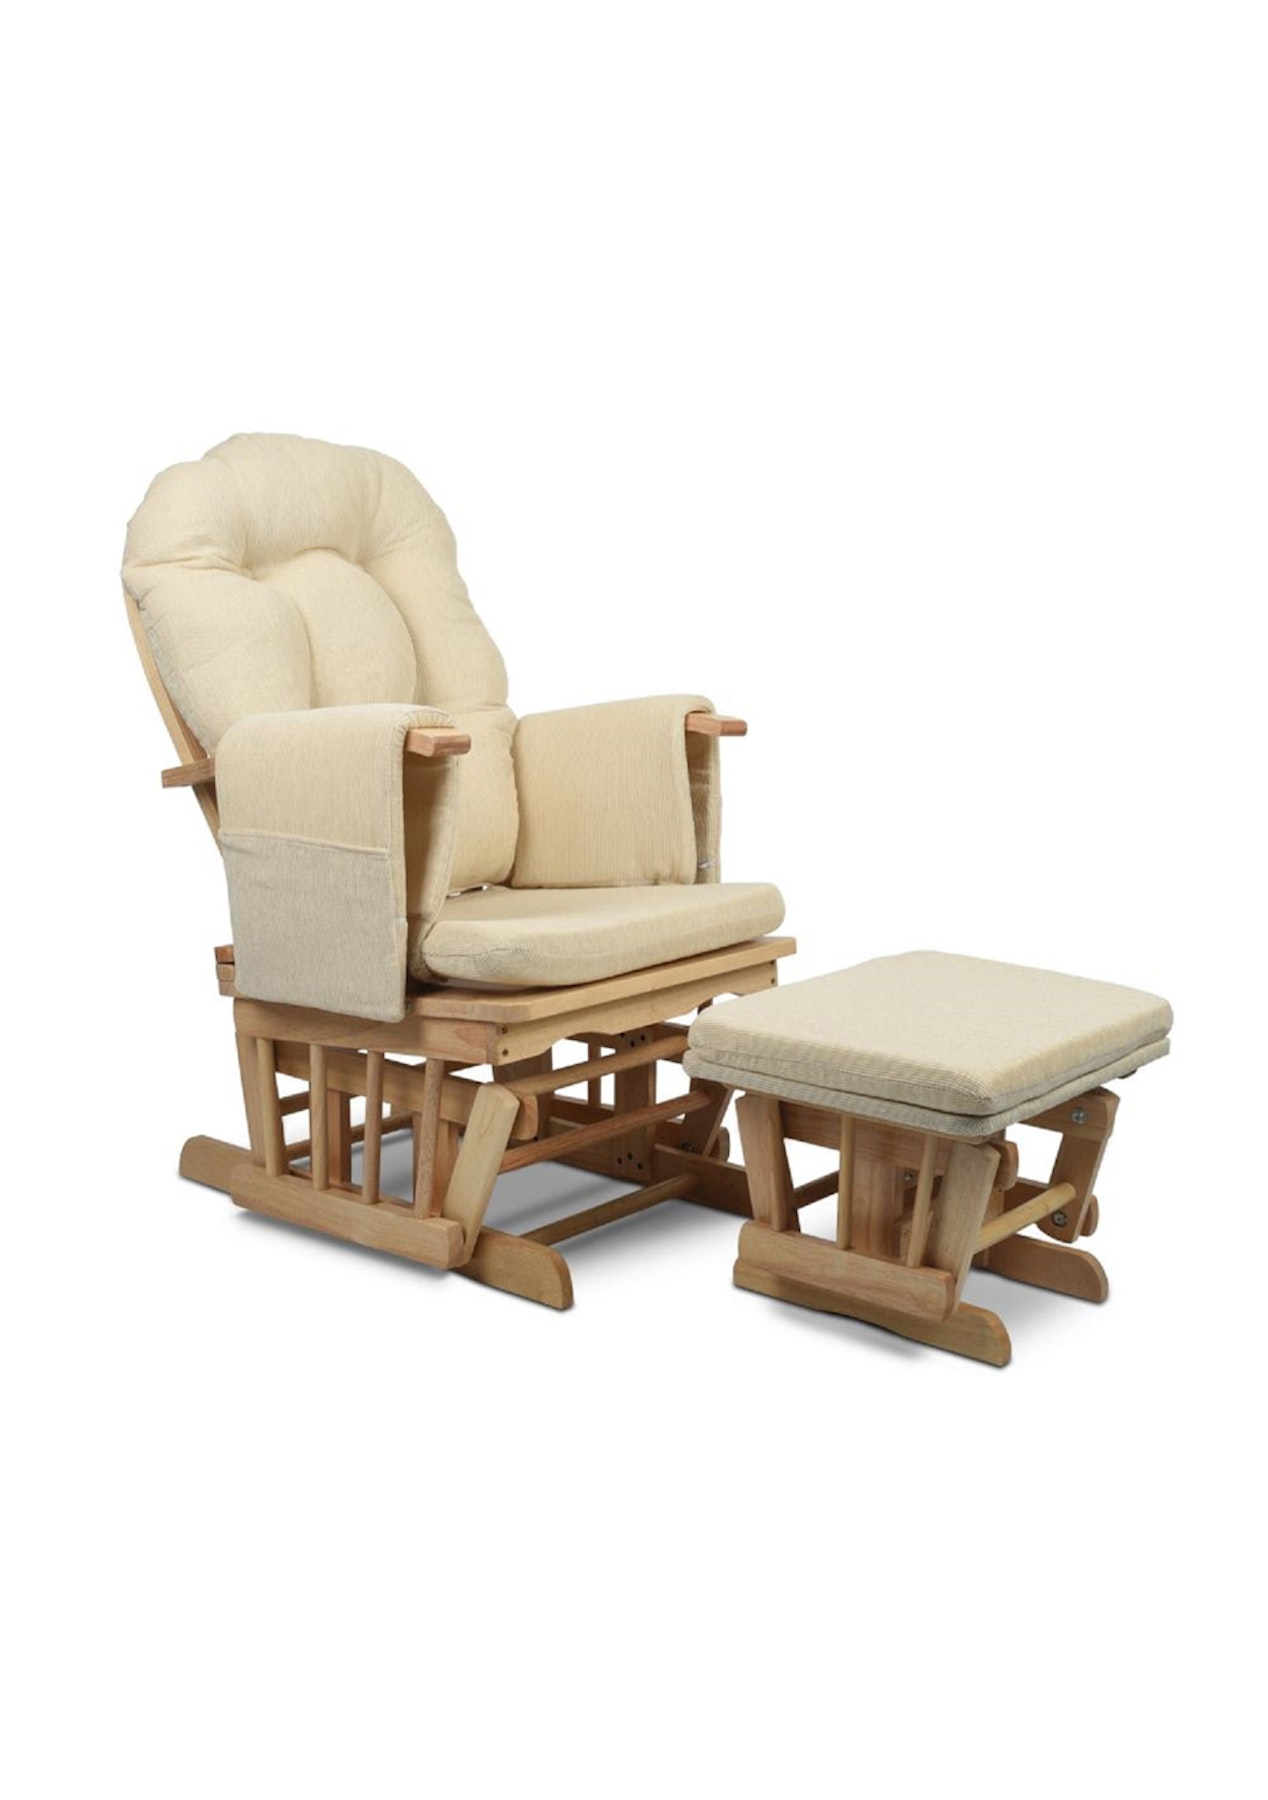 Superb Nursing Glider Chair Gmtry Best Dining Table And Chair Ideas Images Gmtryco